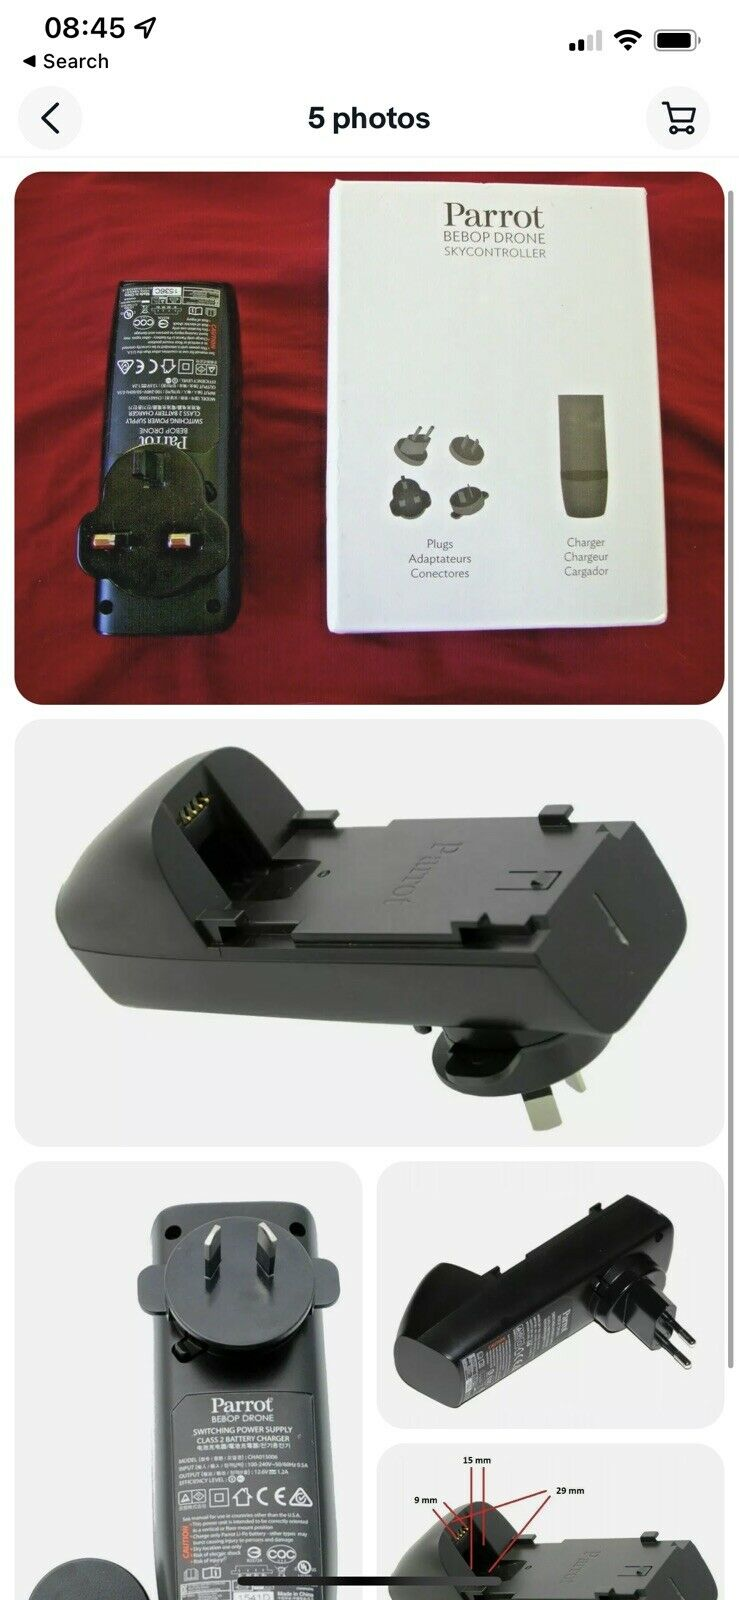 Genuine Parrot Bebop1 Drone Mains Powered Battery Charger & Worldwide Adapters.